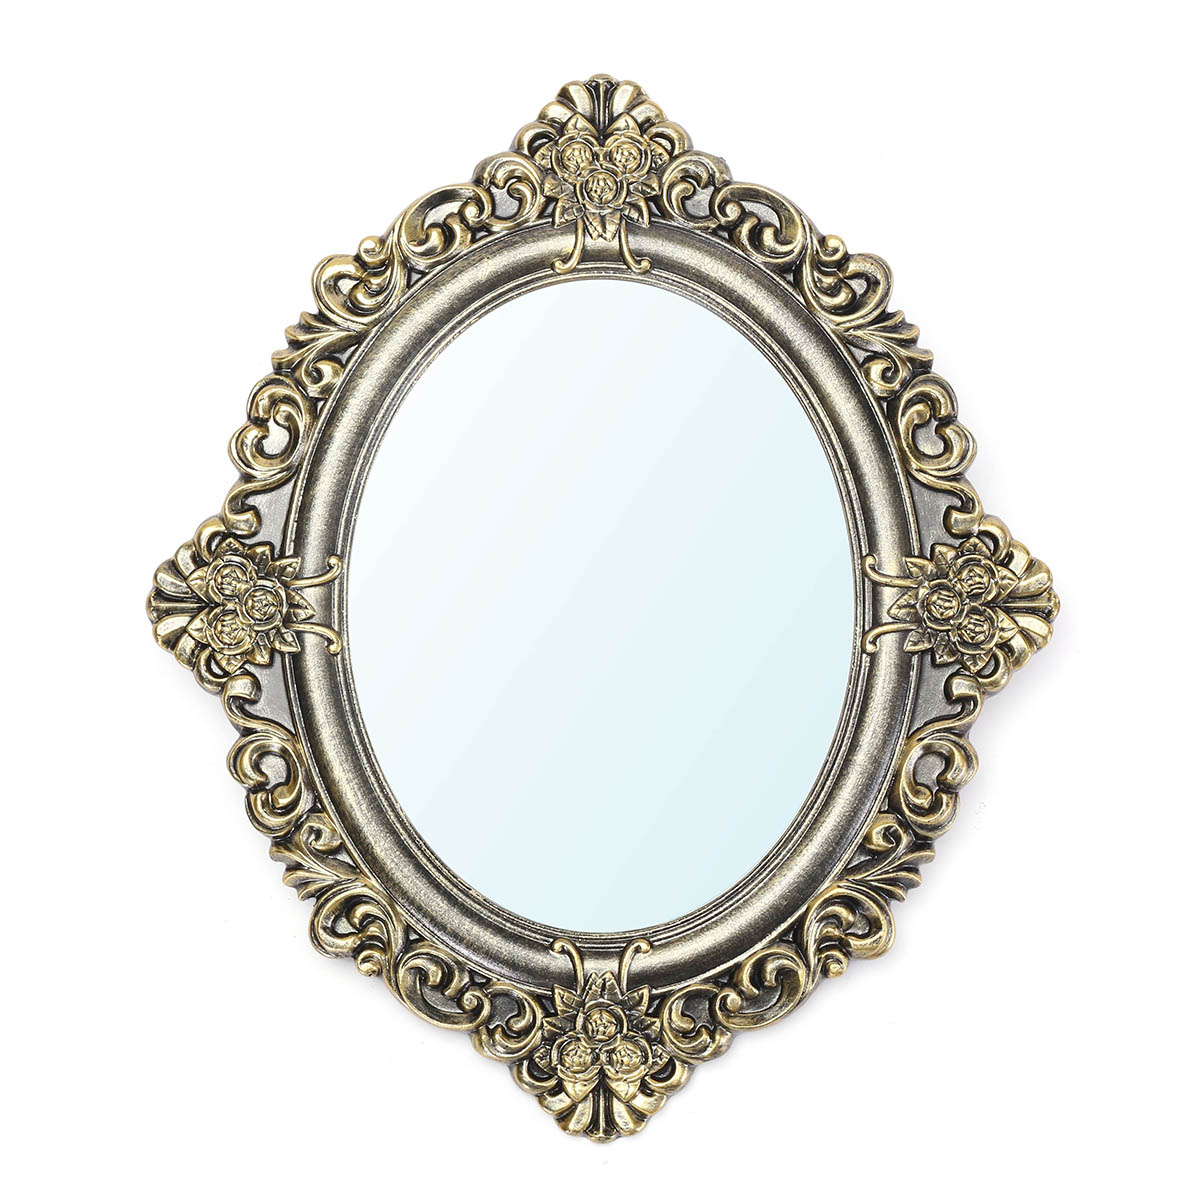 Us 66 49 5 Off 23 Inch Oval Classic Bronze Decorative Mirrors Antique Wall Mouted Mirrors Home Living Room Bedroom Bathroom Decorative Mirror In